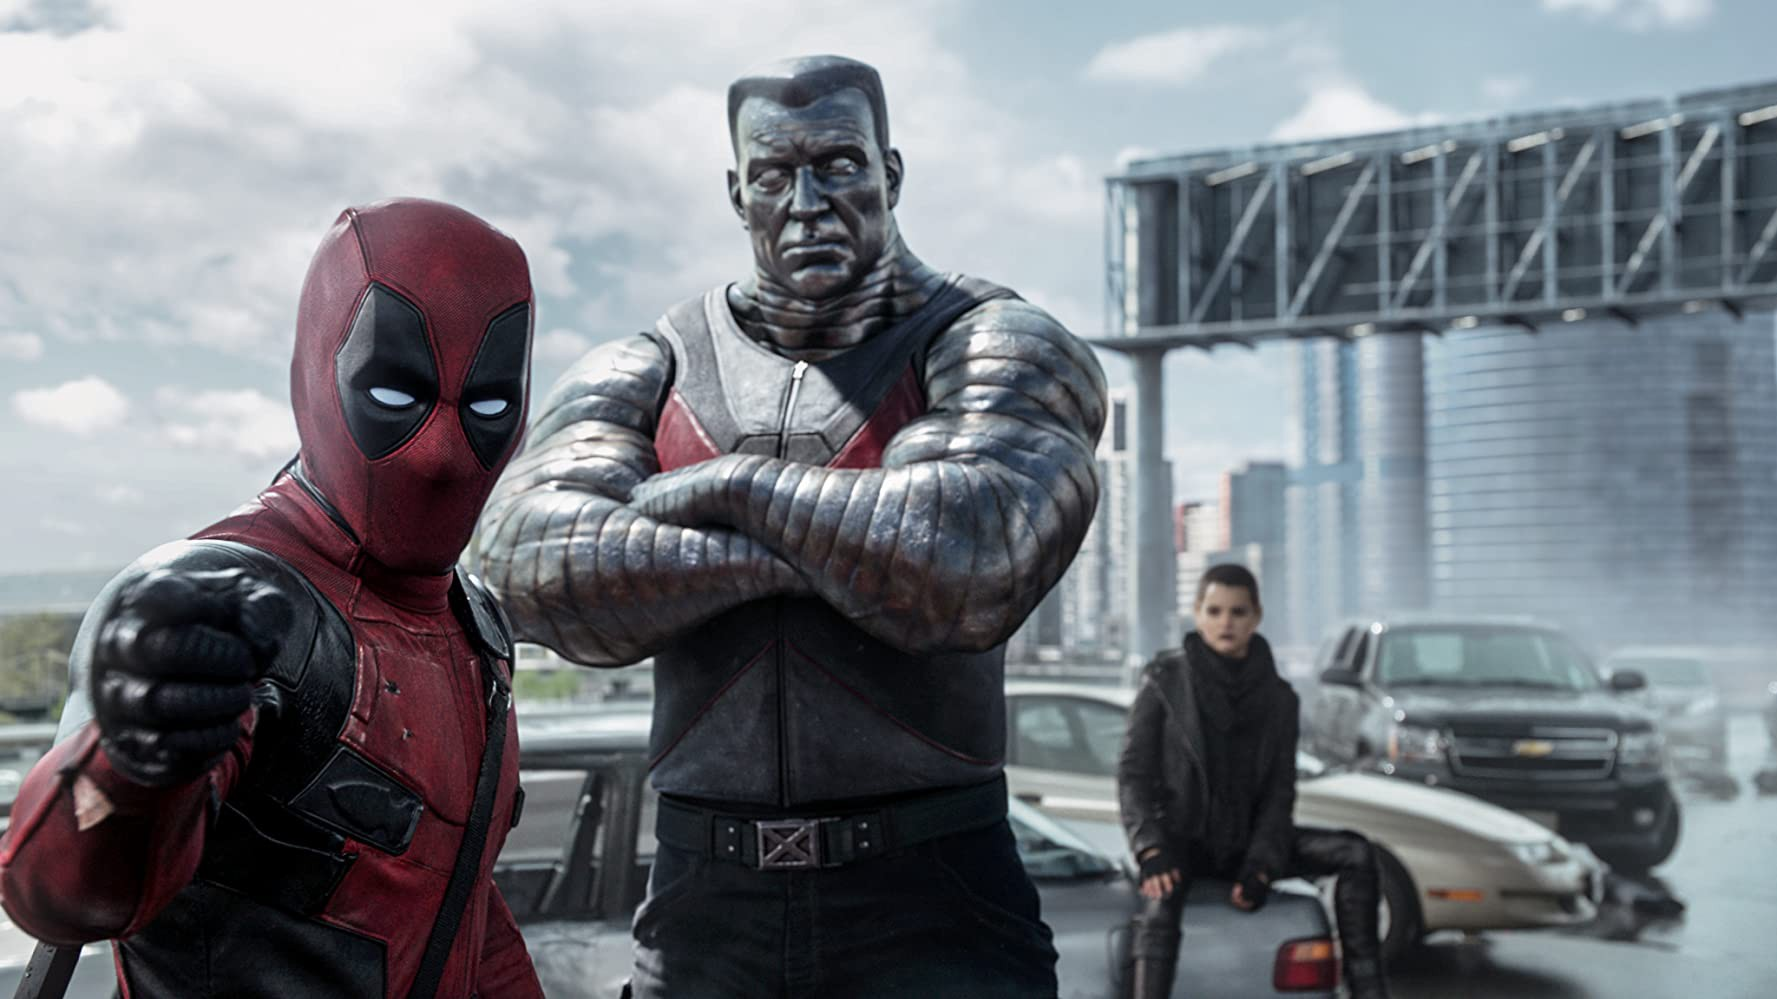 where to watch deadpool movie online free